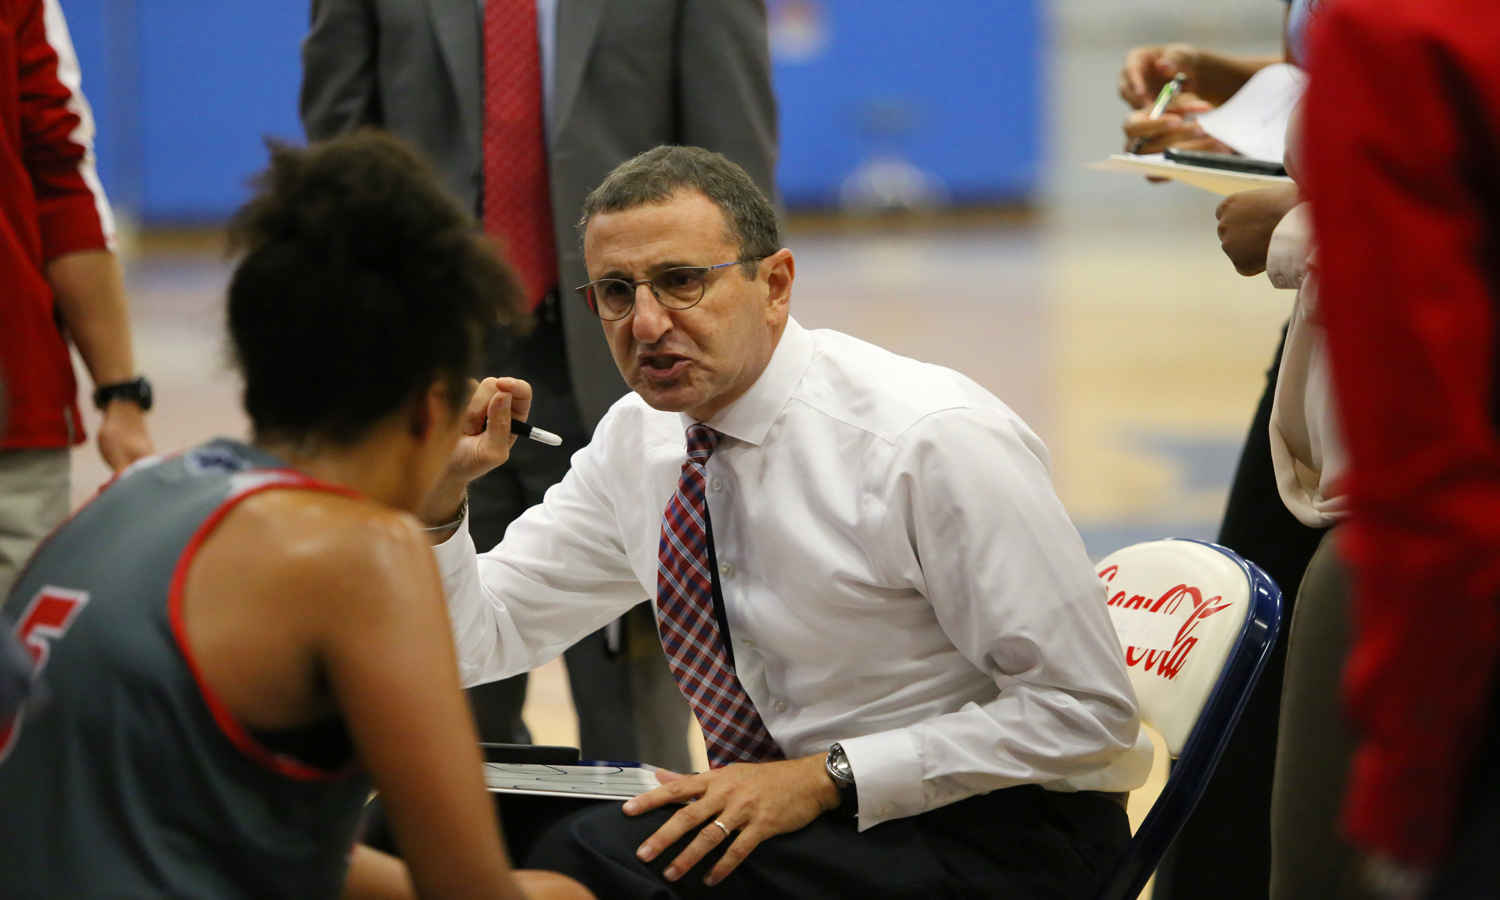 FAU women's basketball head coach Jim Jabir talks next tactics with his players during a media timeout in his team's 79-67 win over Lynn University on Nov. 4. Alexander Rodriguez | Staff Photographer